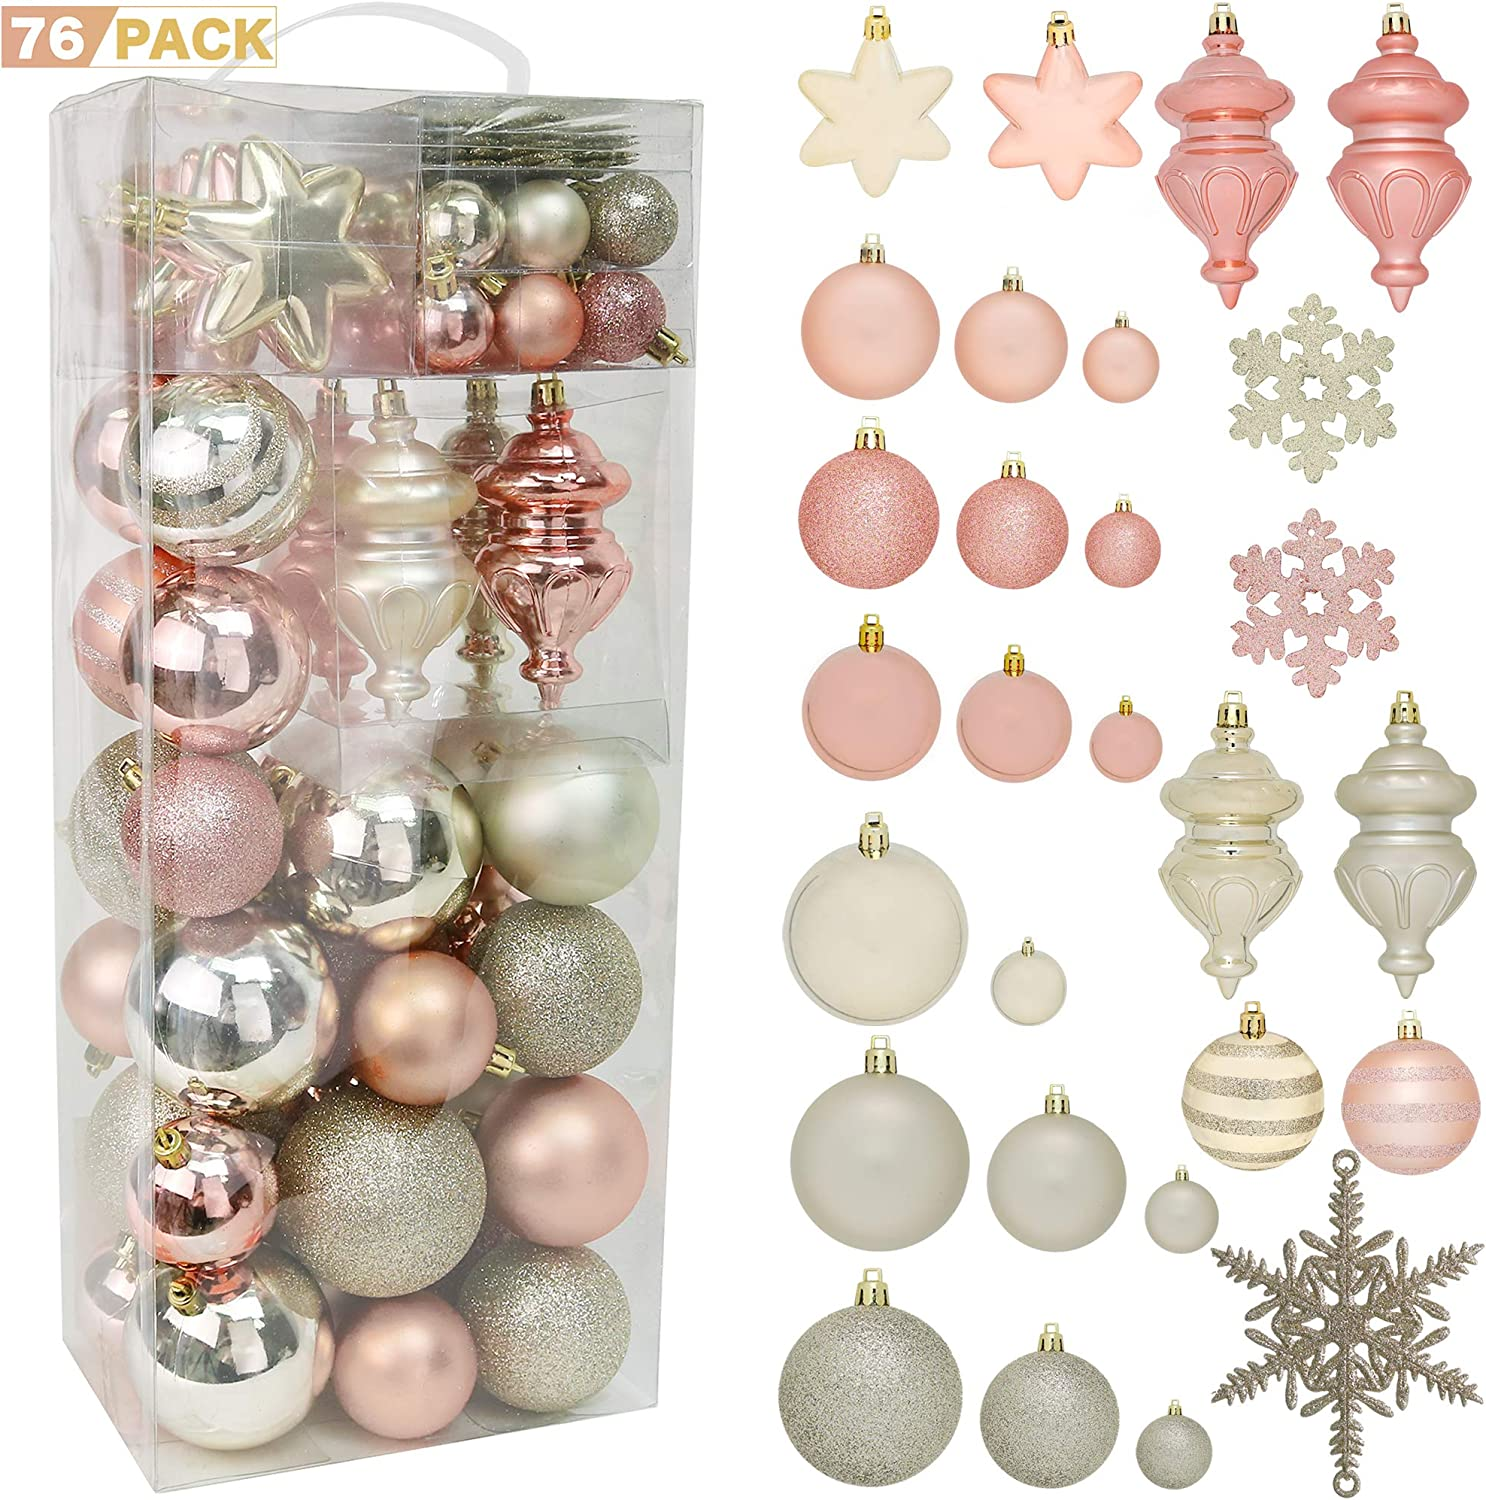 RN'D Christmas Snowflake Ball Ornaments - Christmas Hanging Snowflake and Ball Ornament Assortment Set with Hooks - 76 Ornaments and Hooks (Yellow & Rose Gold)